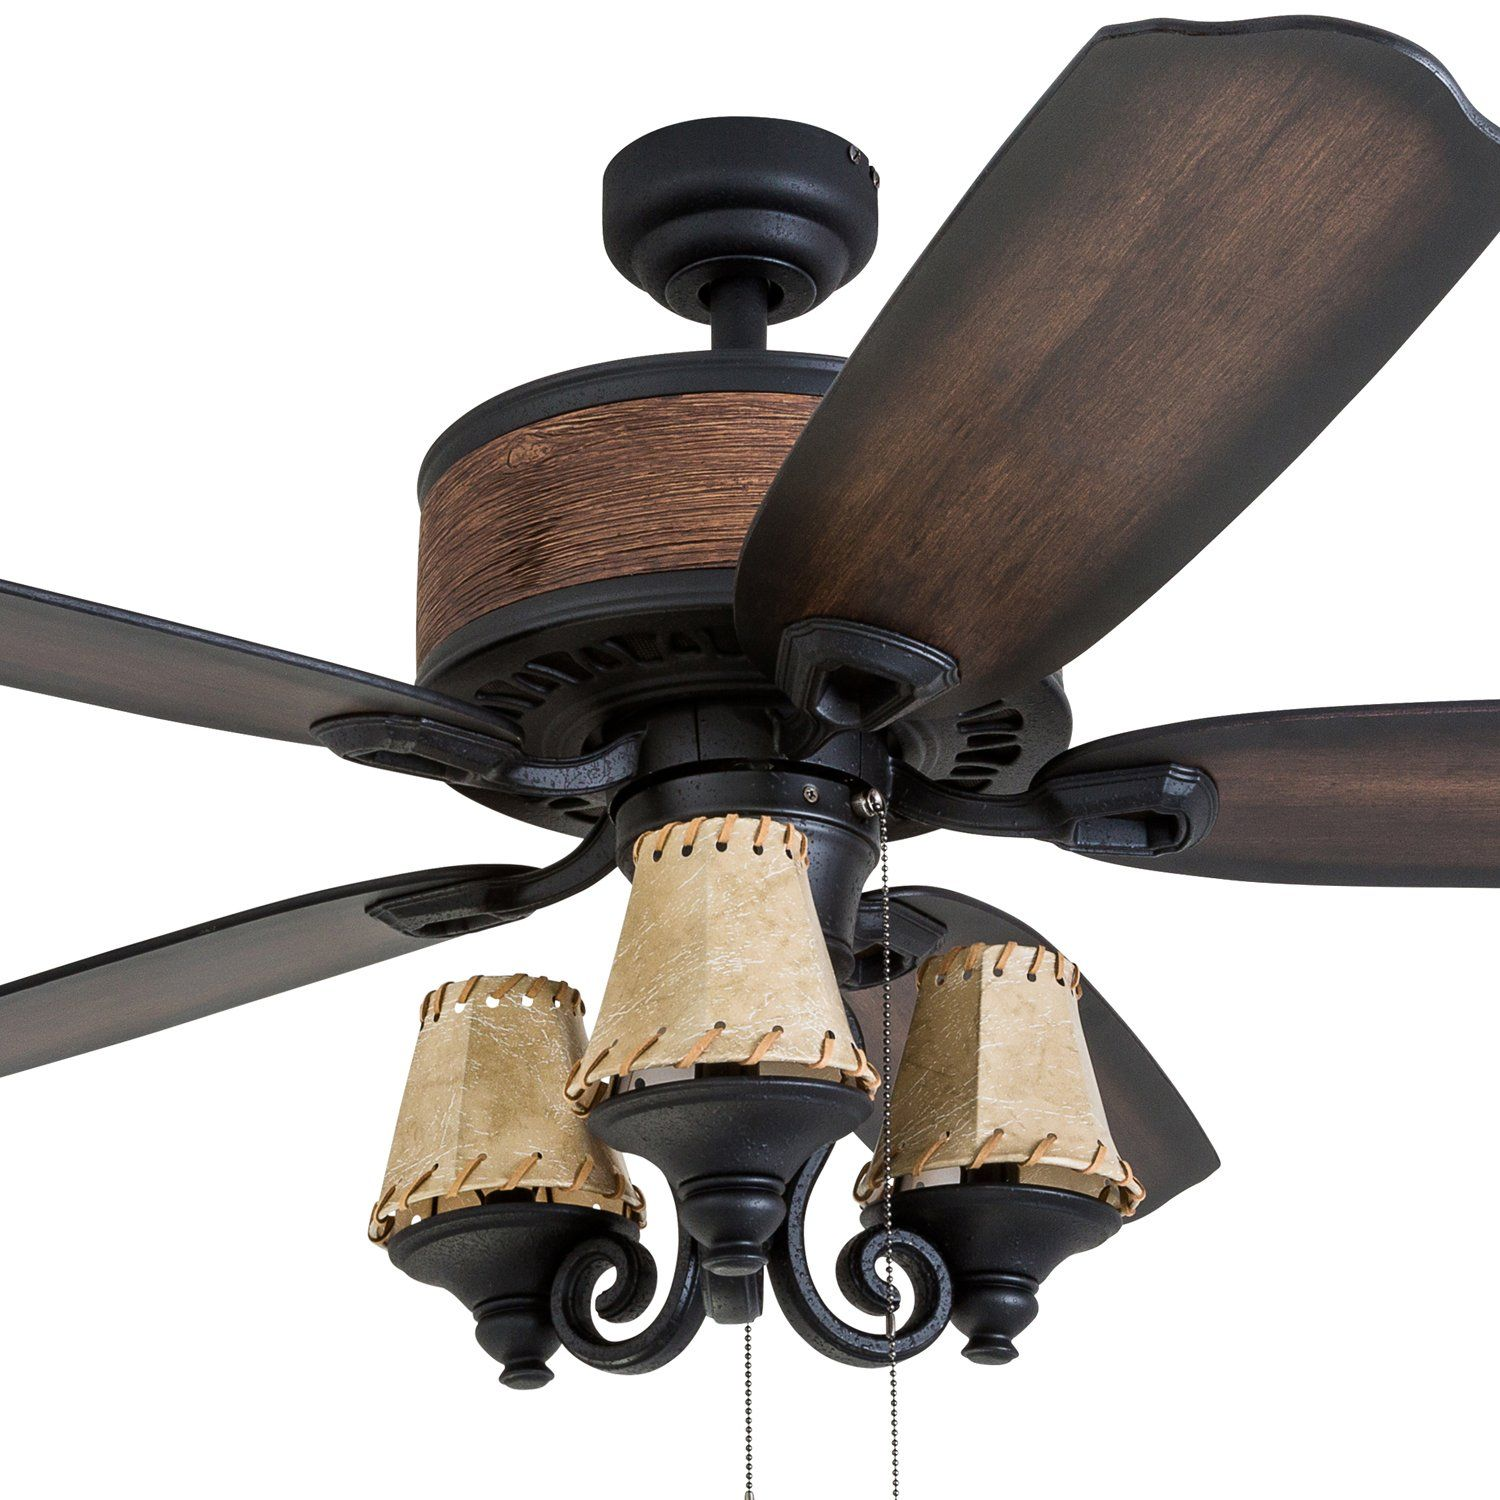 Prominence Home 41110 01 Inspired Chestnut Leather Lamp Ceiling Fan Rustic Style